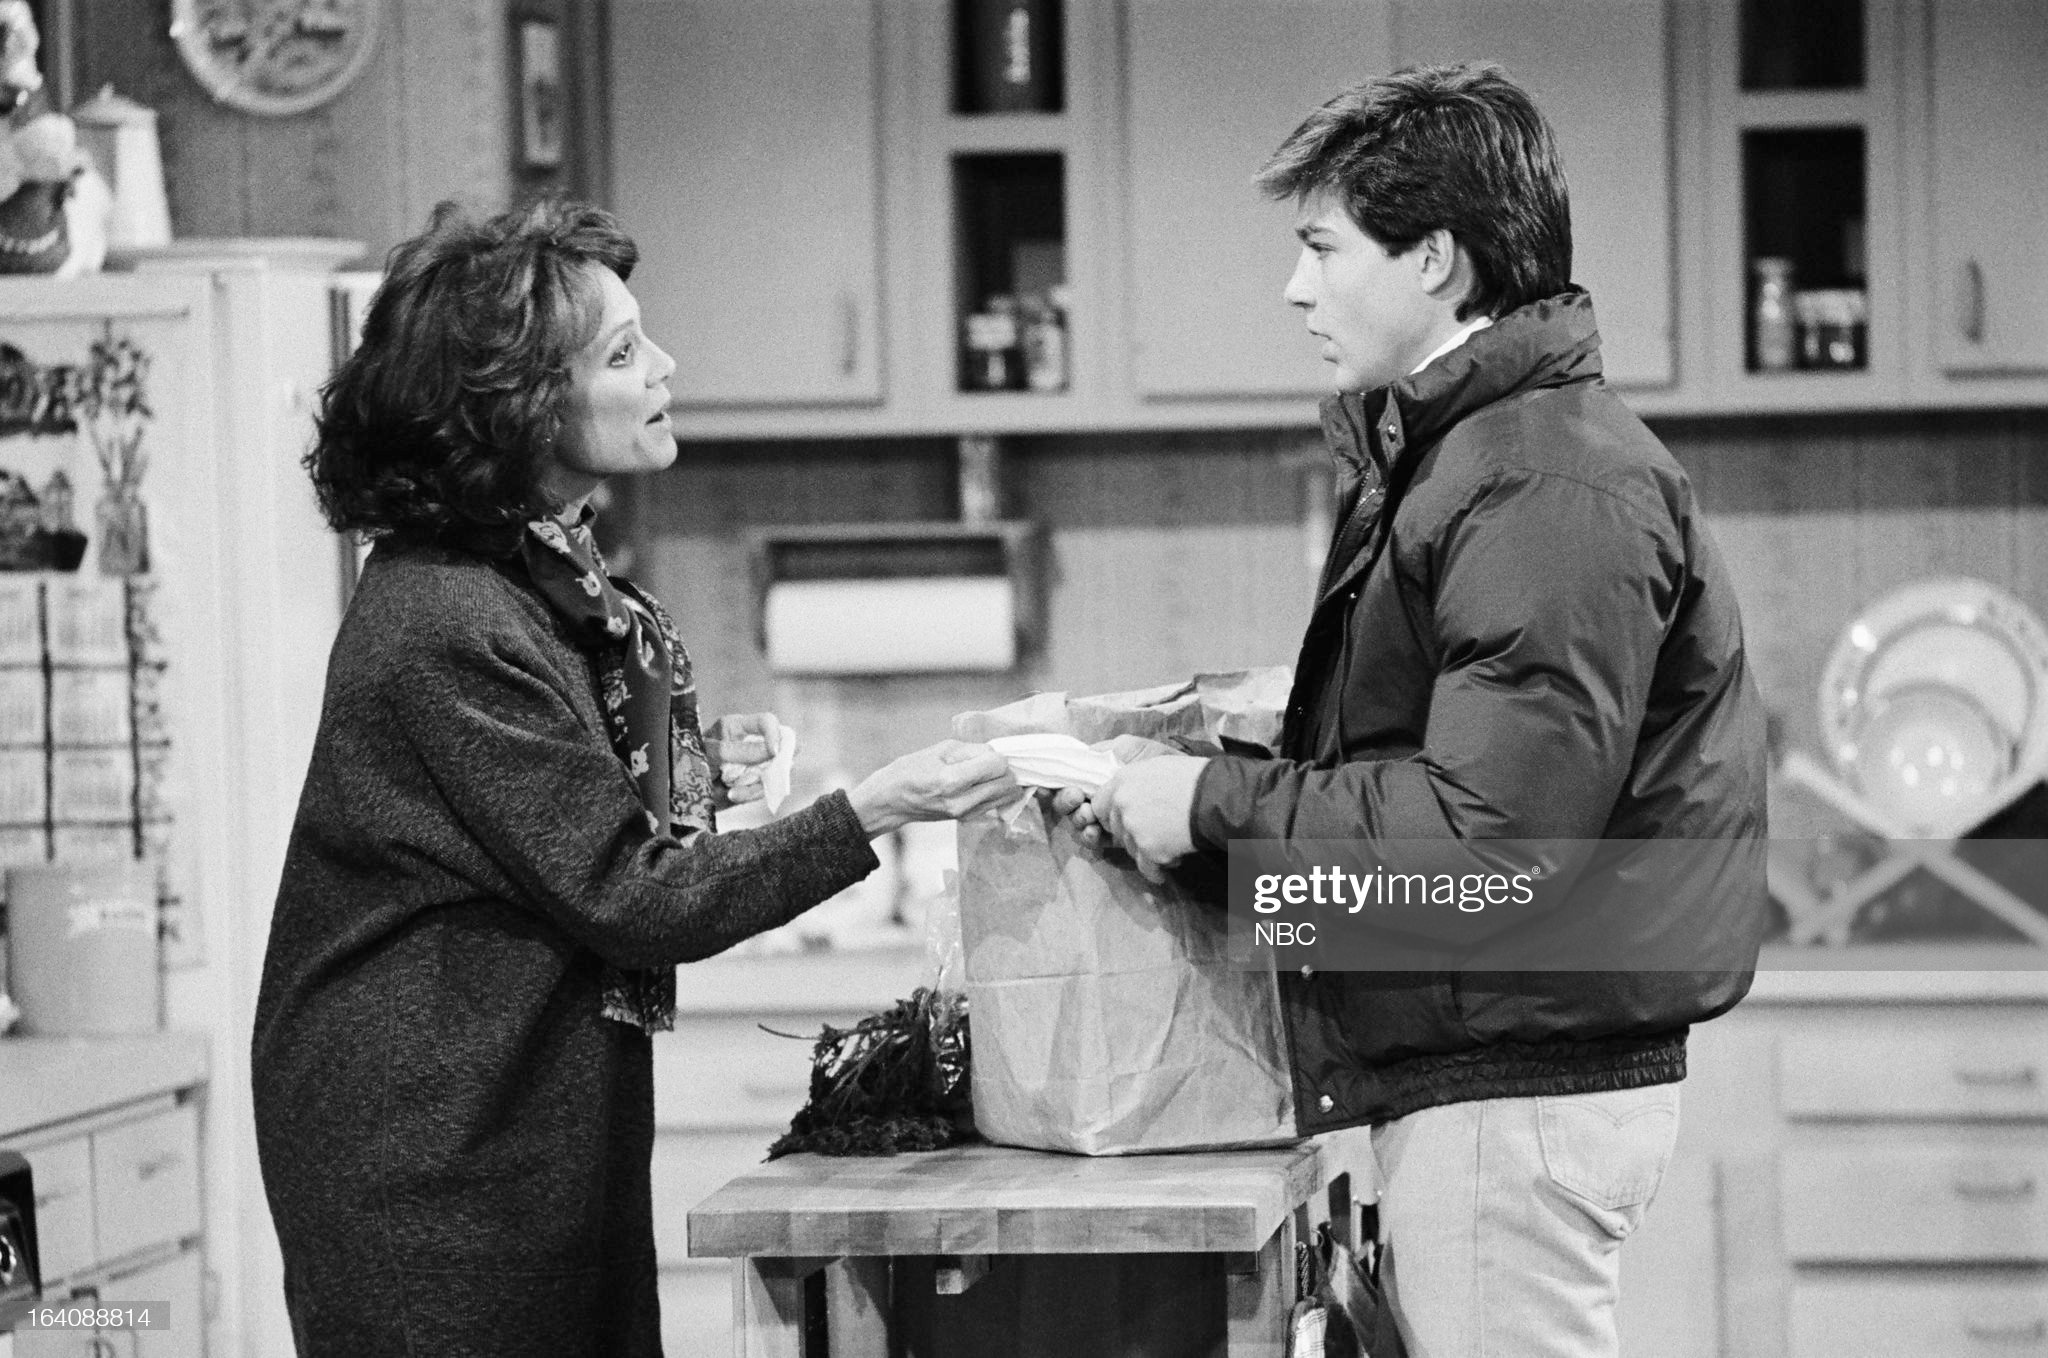 bad-timing-episode-214-pictured-valerie-harper-as-valerie-hogan-jason-picture-id164088814